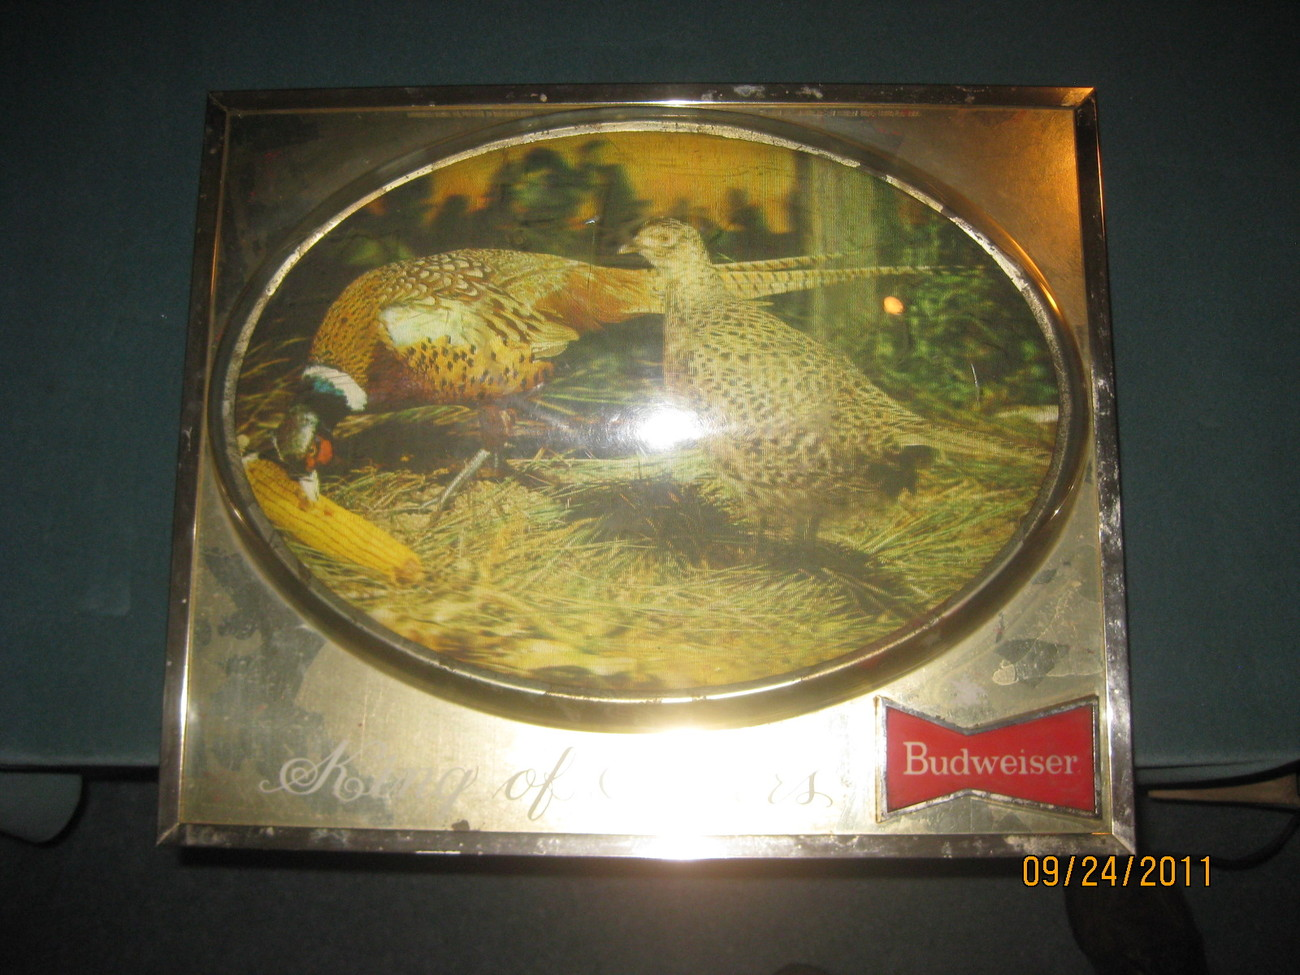 Lighted Dome Budweiser Pheasant Sign, 1950s